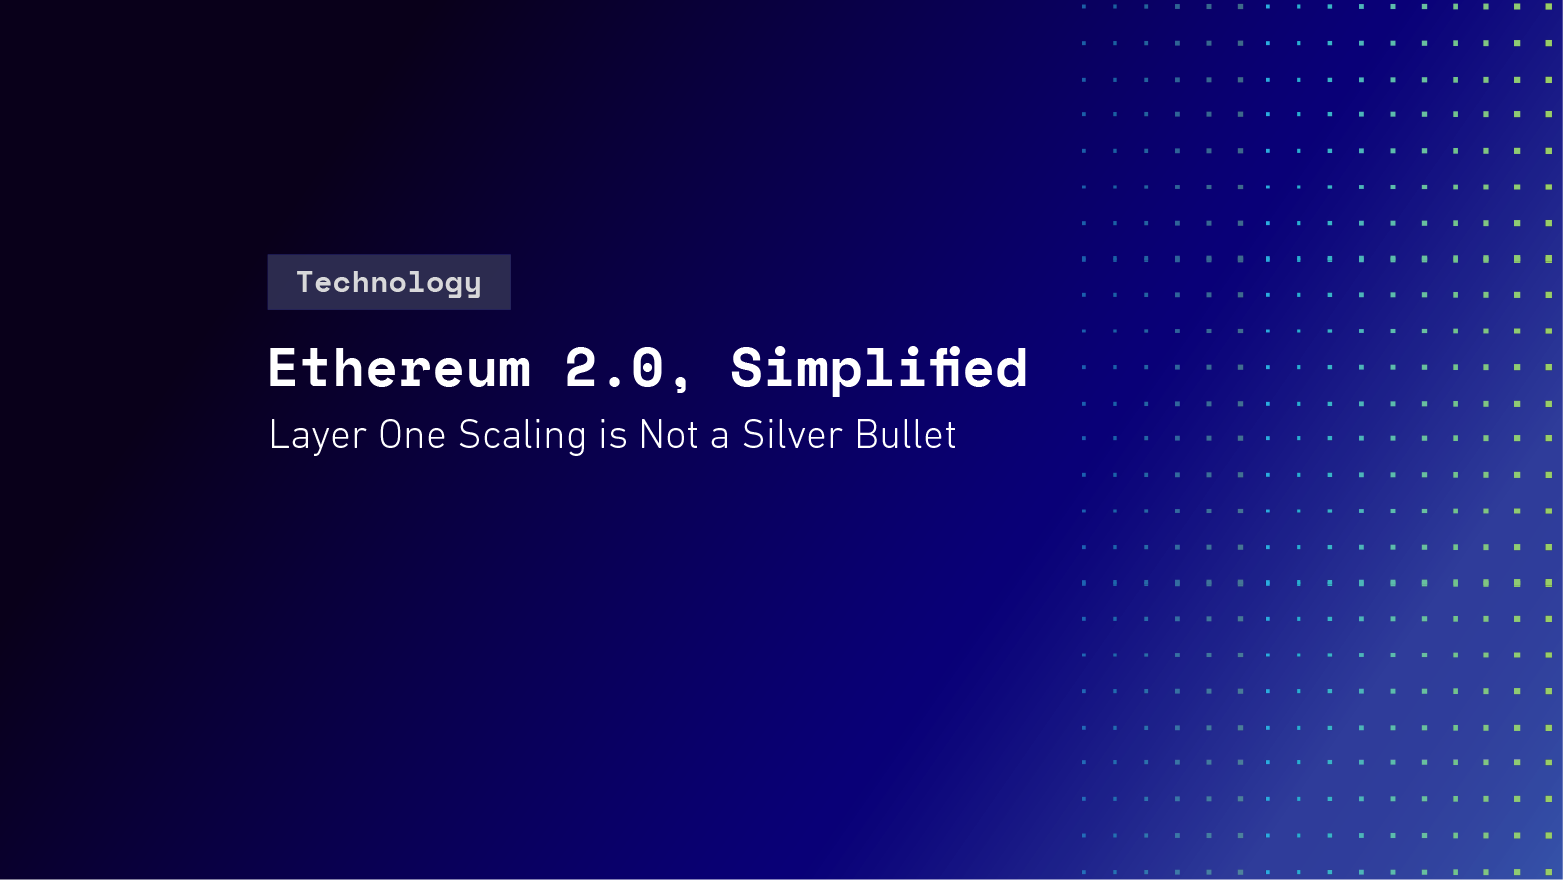 Ethereum 2.0, Simplified